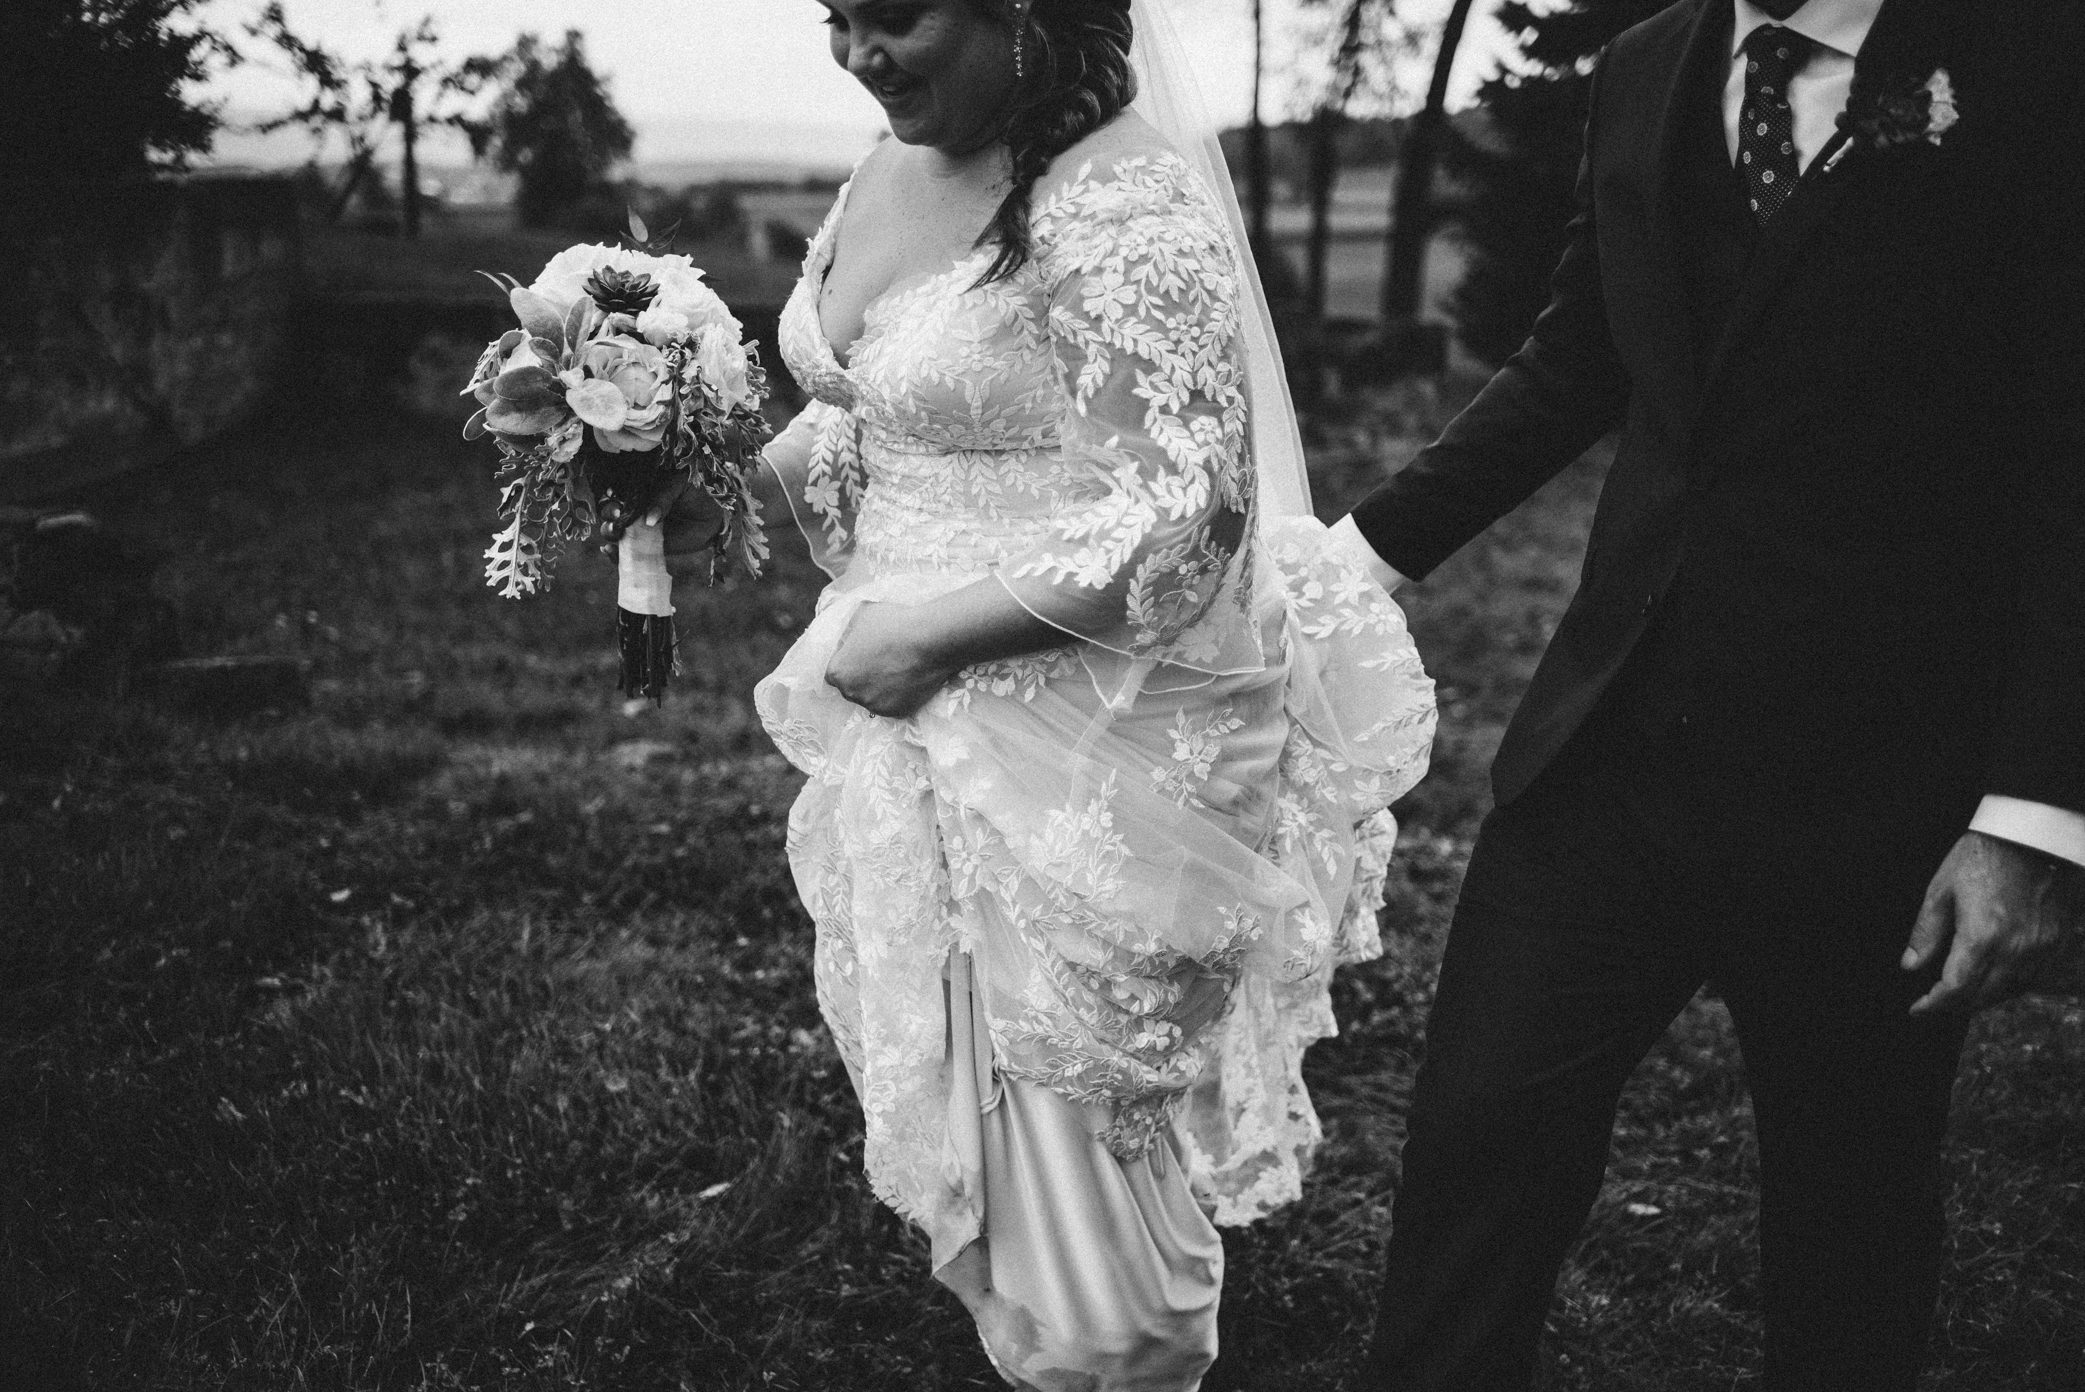 Jordan and Danielle - Shenandoah Woods Luray Virginia Wedding - Foggy Mountain and Forest Wedding - White Sails Creative Photography_91.JPG